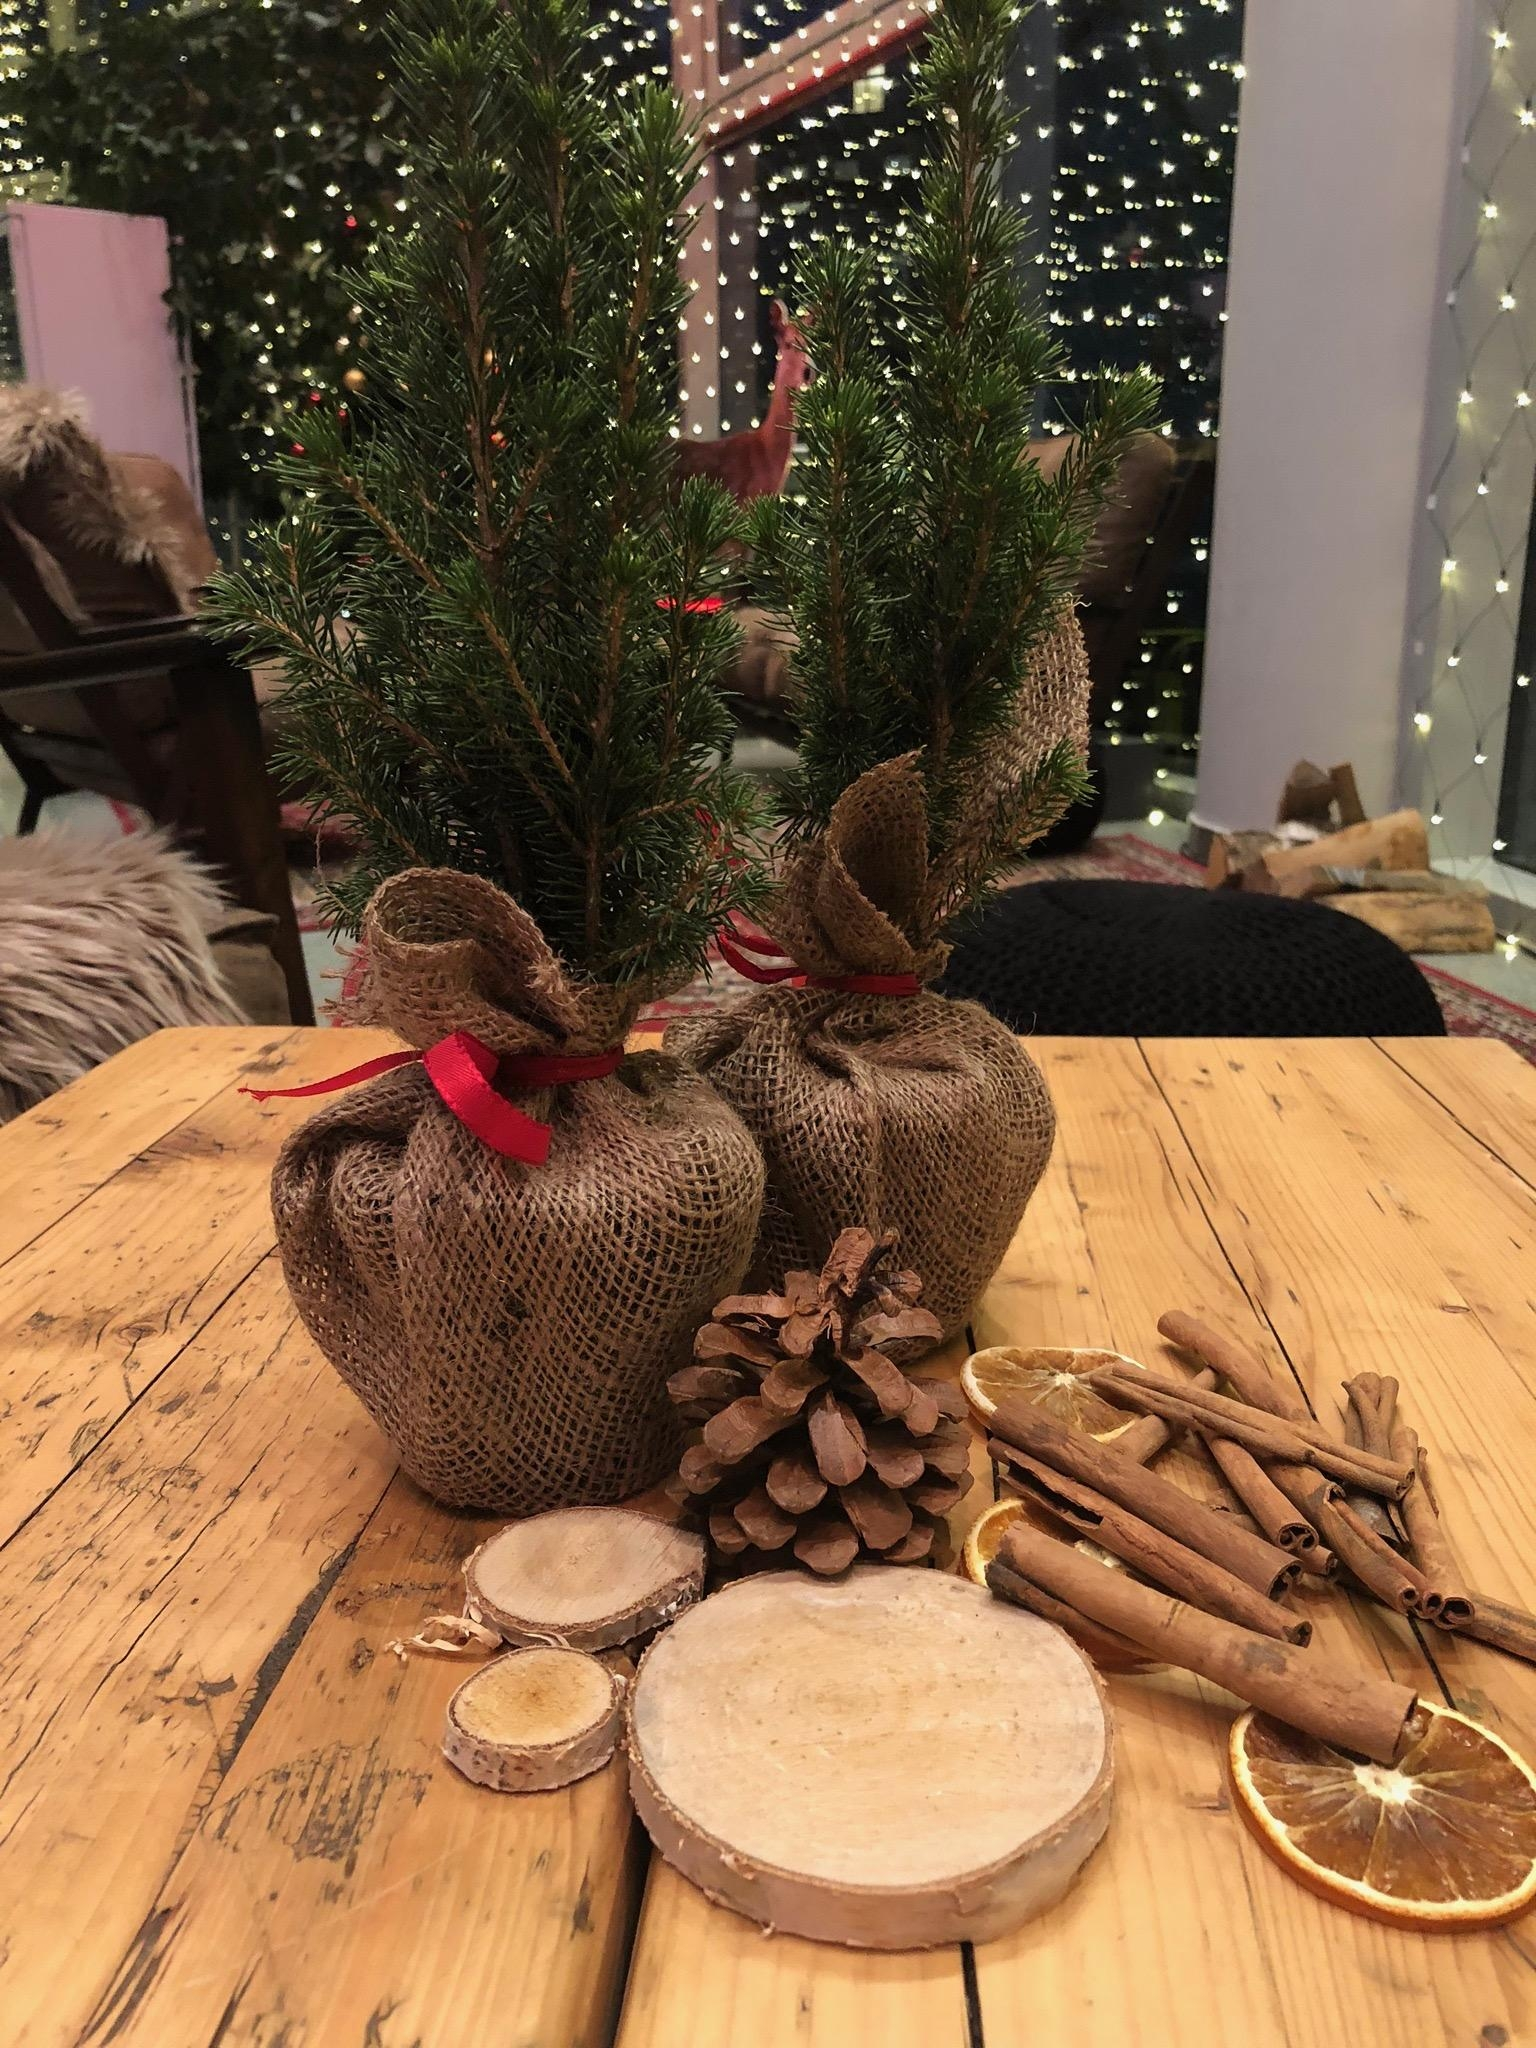 Its beginning to look a lot like christmas ... #weihnachten #weihnachtsdeko #zimtstange #orangen #holz #tannenzapfen